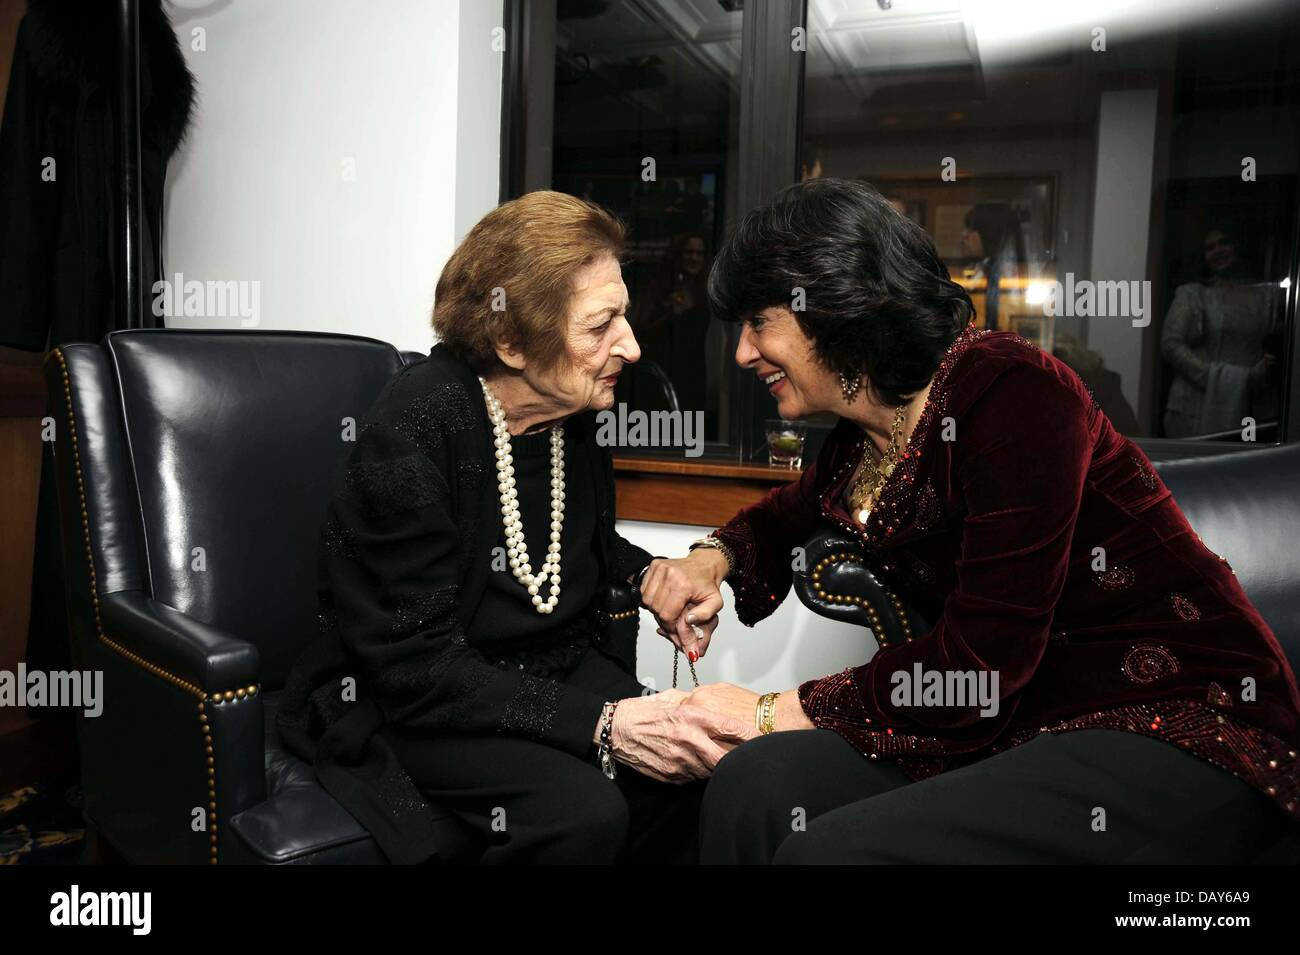 July 20, 2013 - Washington, District of Columbia, U.S. - Longtime White House journalist Helen Thomas, a pioneer - Stock Image